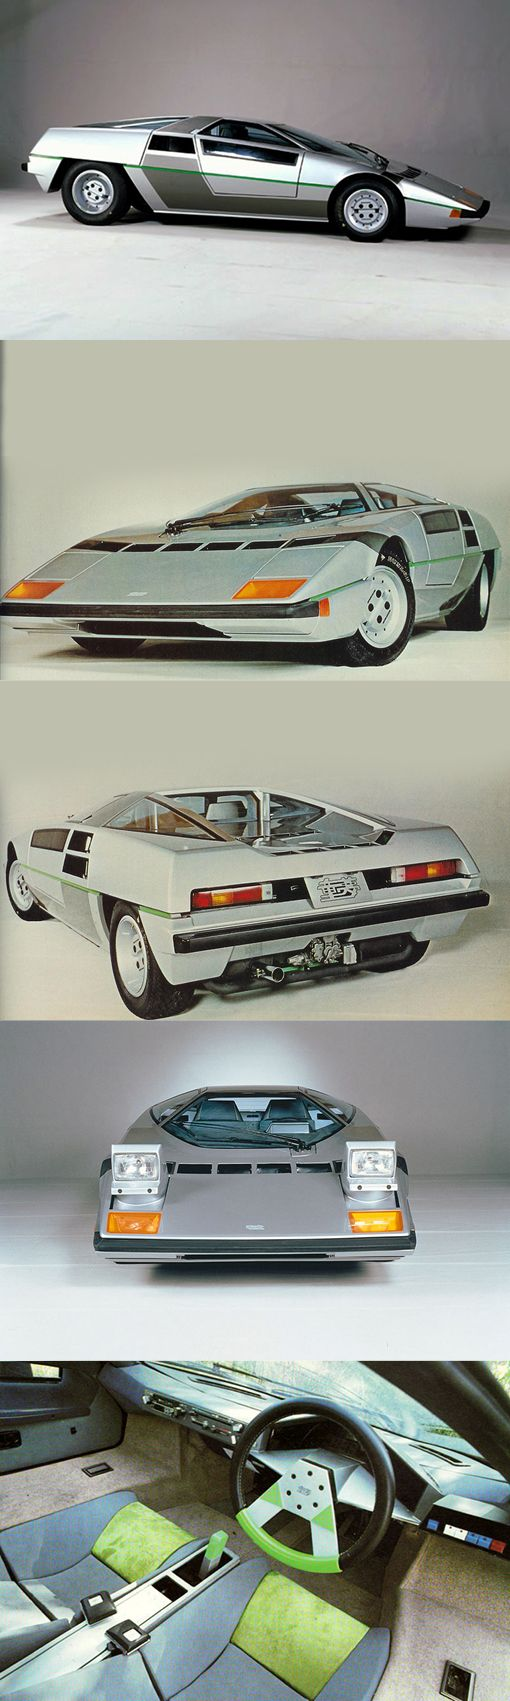 107 Best Japanese Classics Images On Pinterest | Japanese Cars, Old School  Cars And Retro Cars